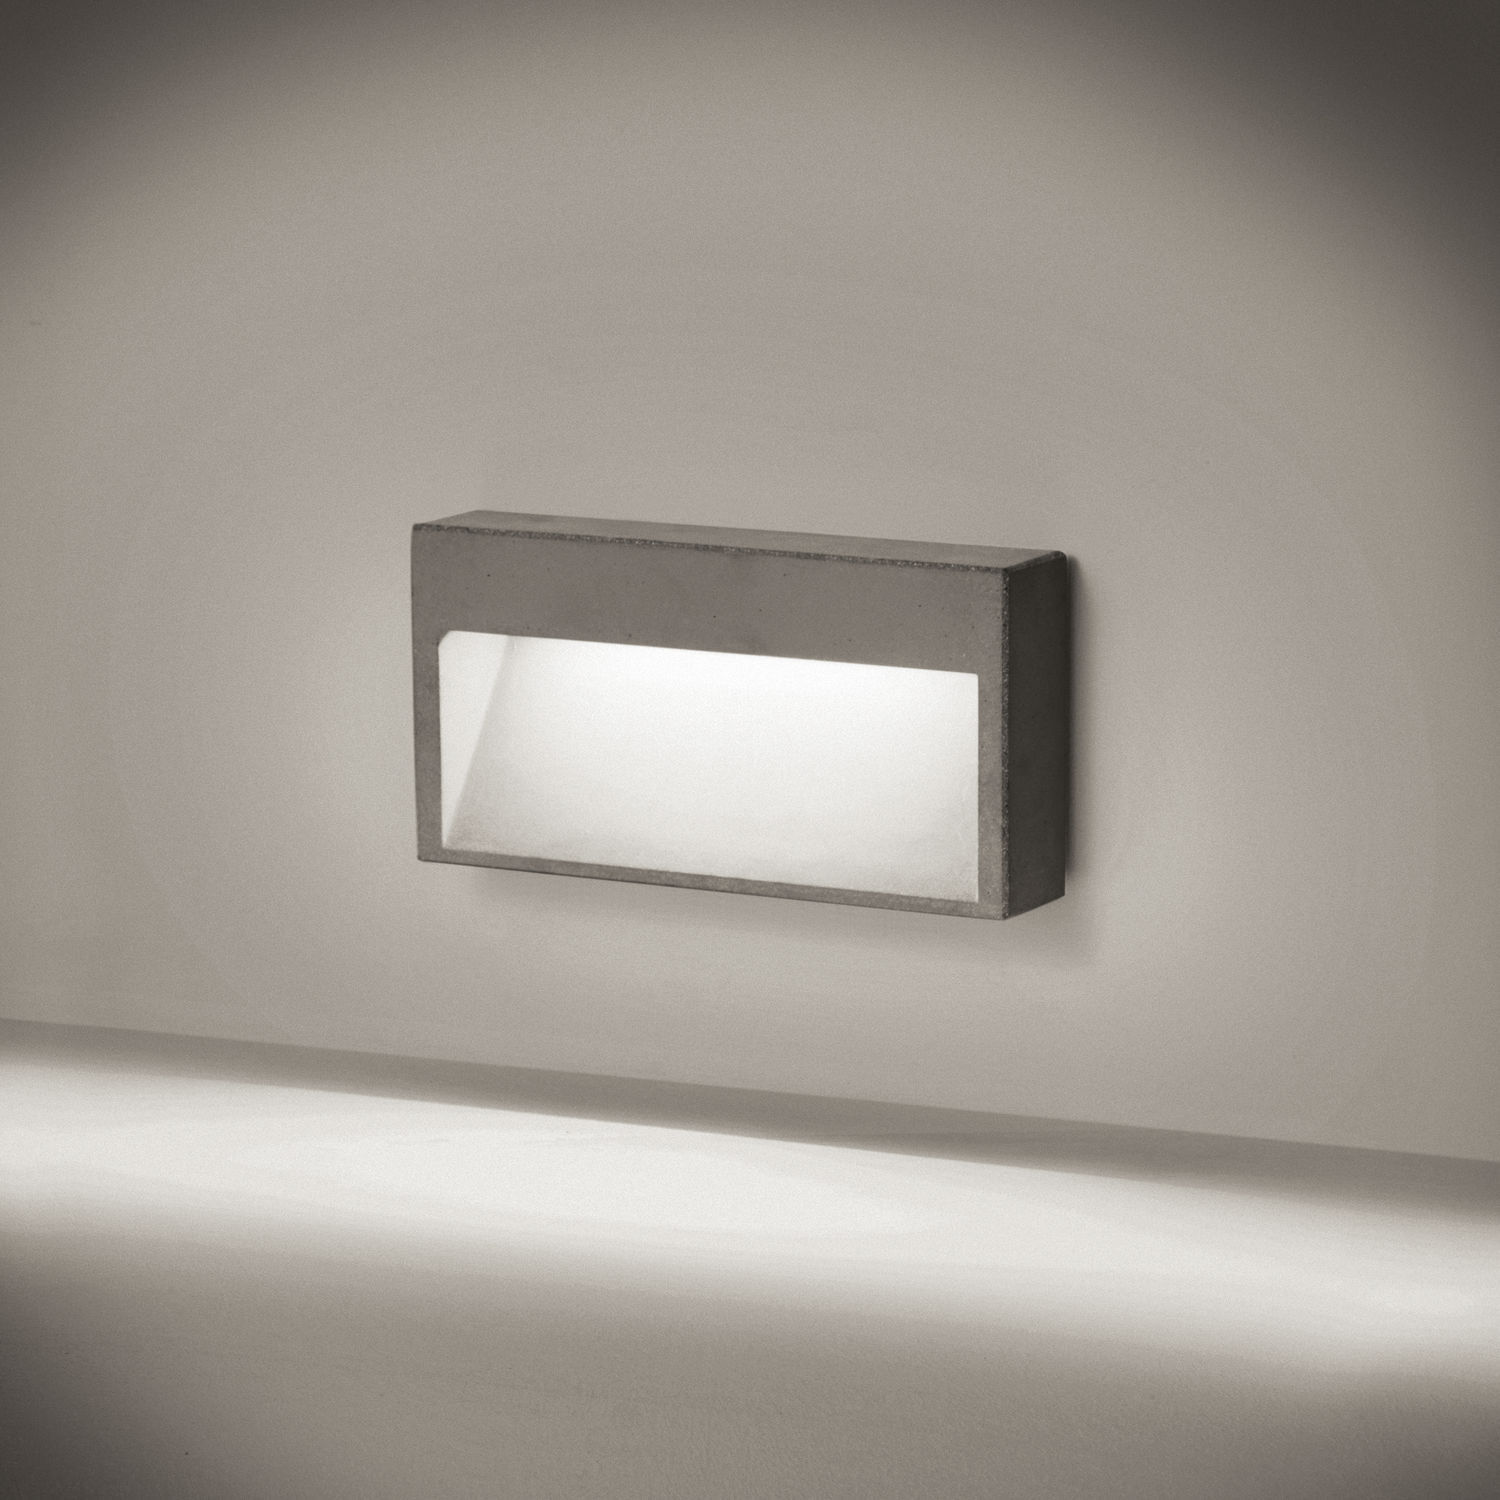 Recessed wall light fixture led rectangular outdoor concrete recessed wall light fixture led rectangular outdoor concrete wall arubaitofo Image collections